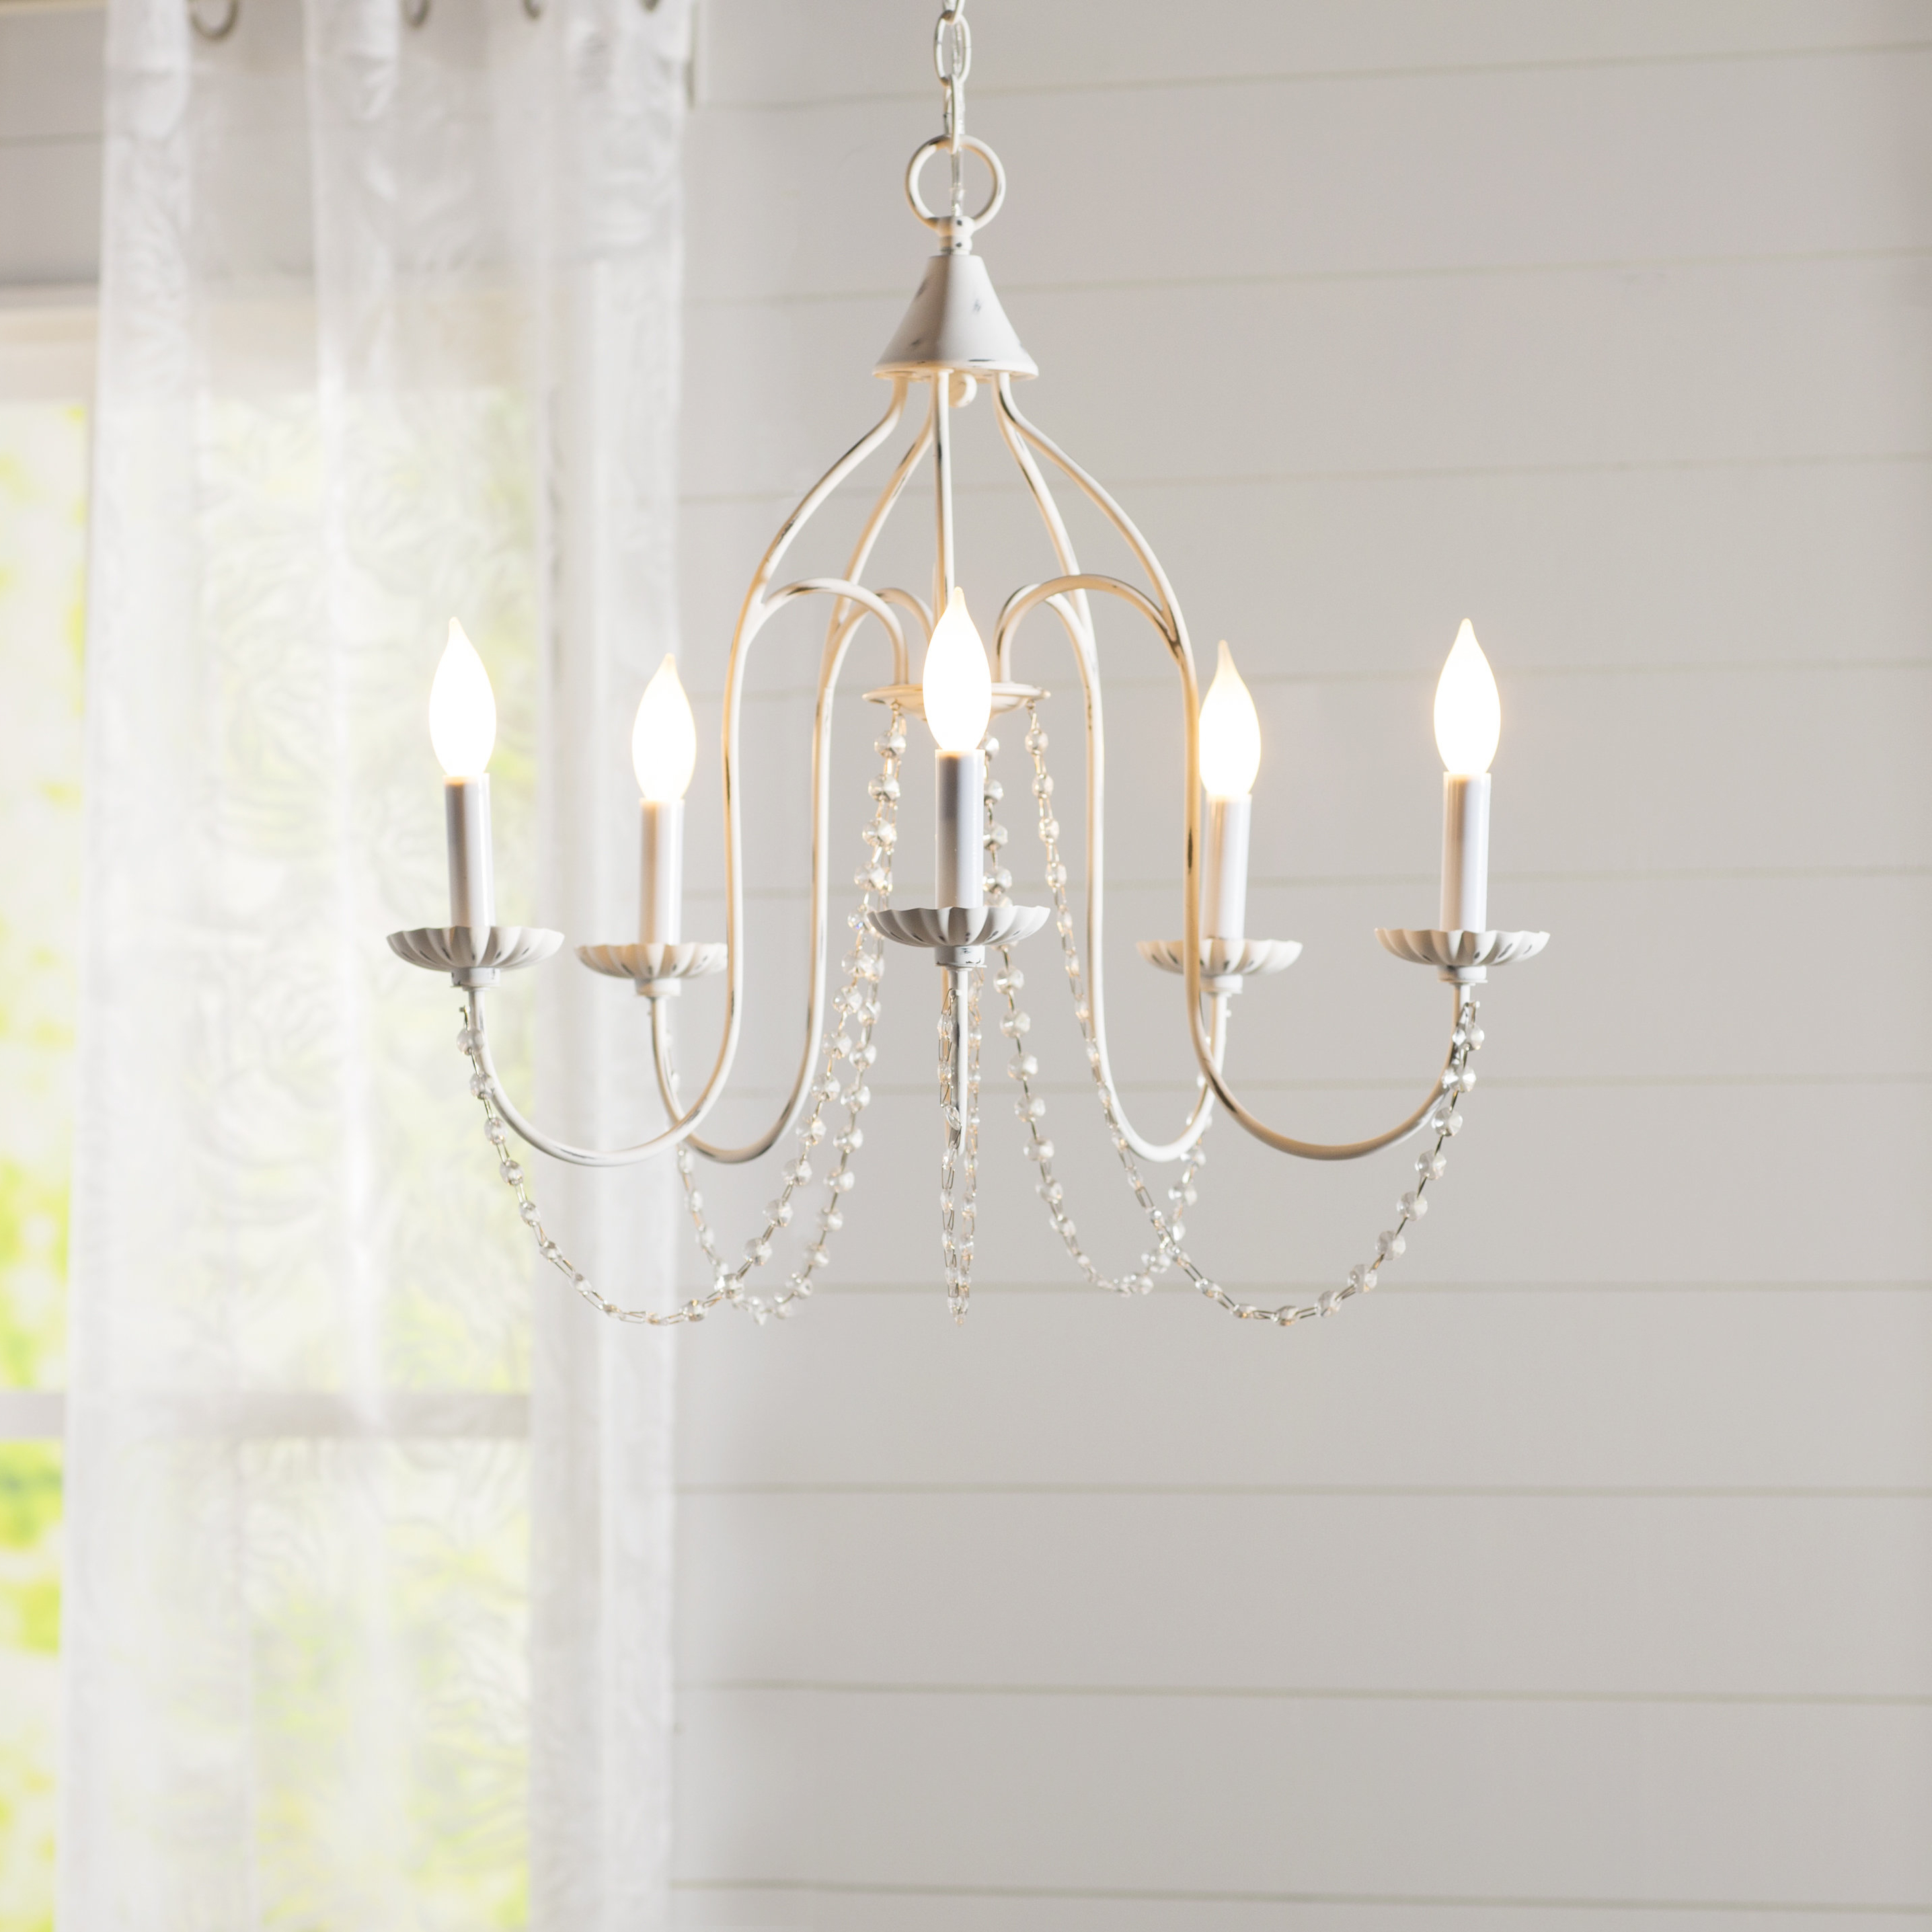 Florentina 5 Light Candle Style Chandeliers Pertaining To Latest Florentina 5 Light Candle Style Chandelier (Gallery 1 of 20)